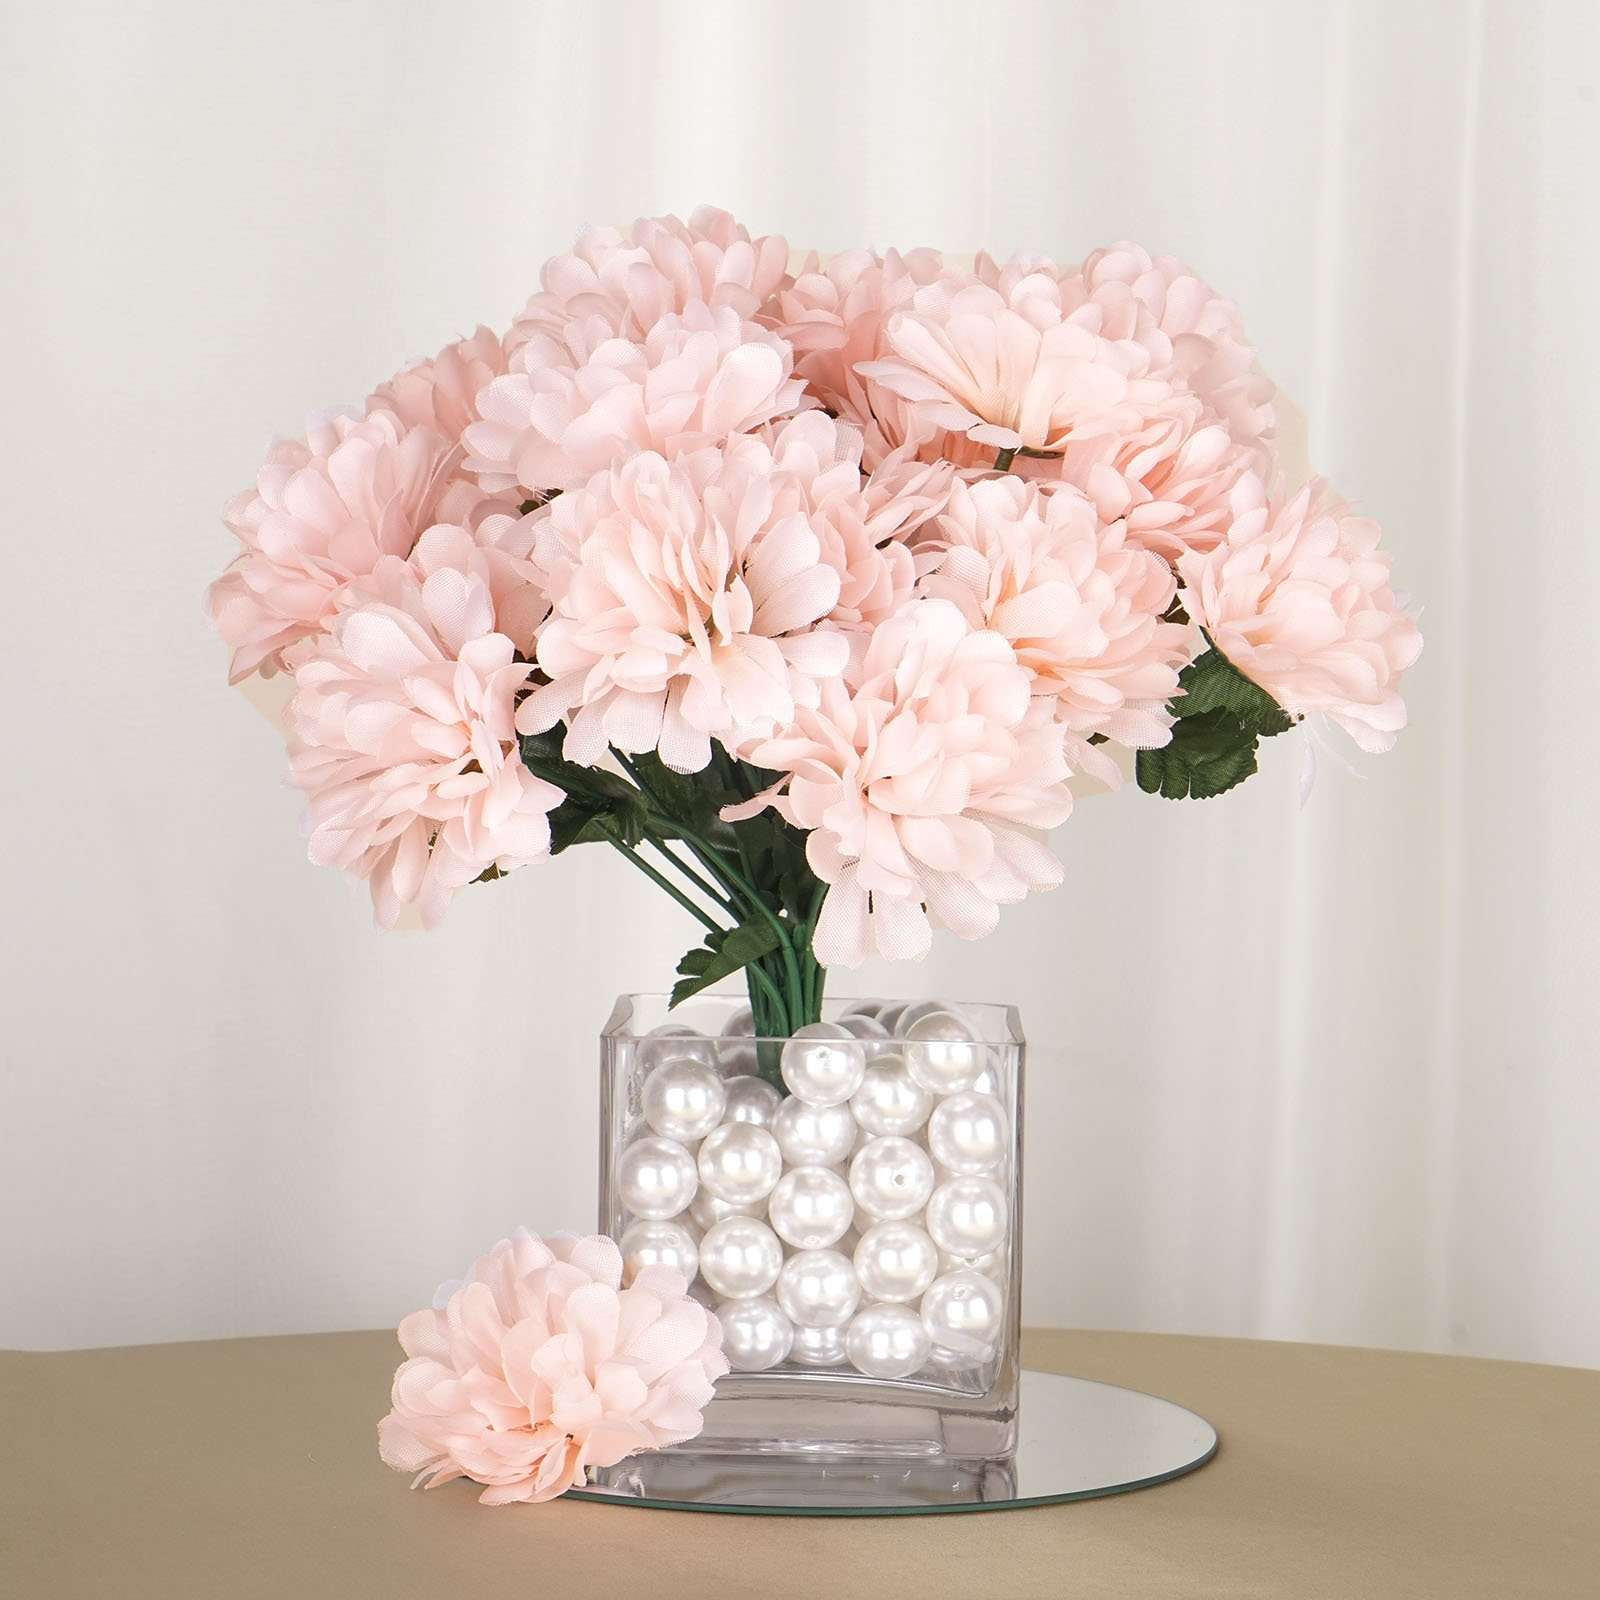 12 Bush 84 Pcs Blush Artificial Silk Chrysanthemum Flower Bridal